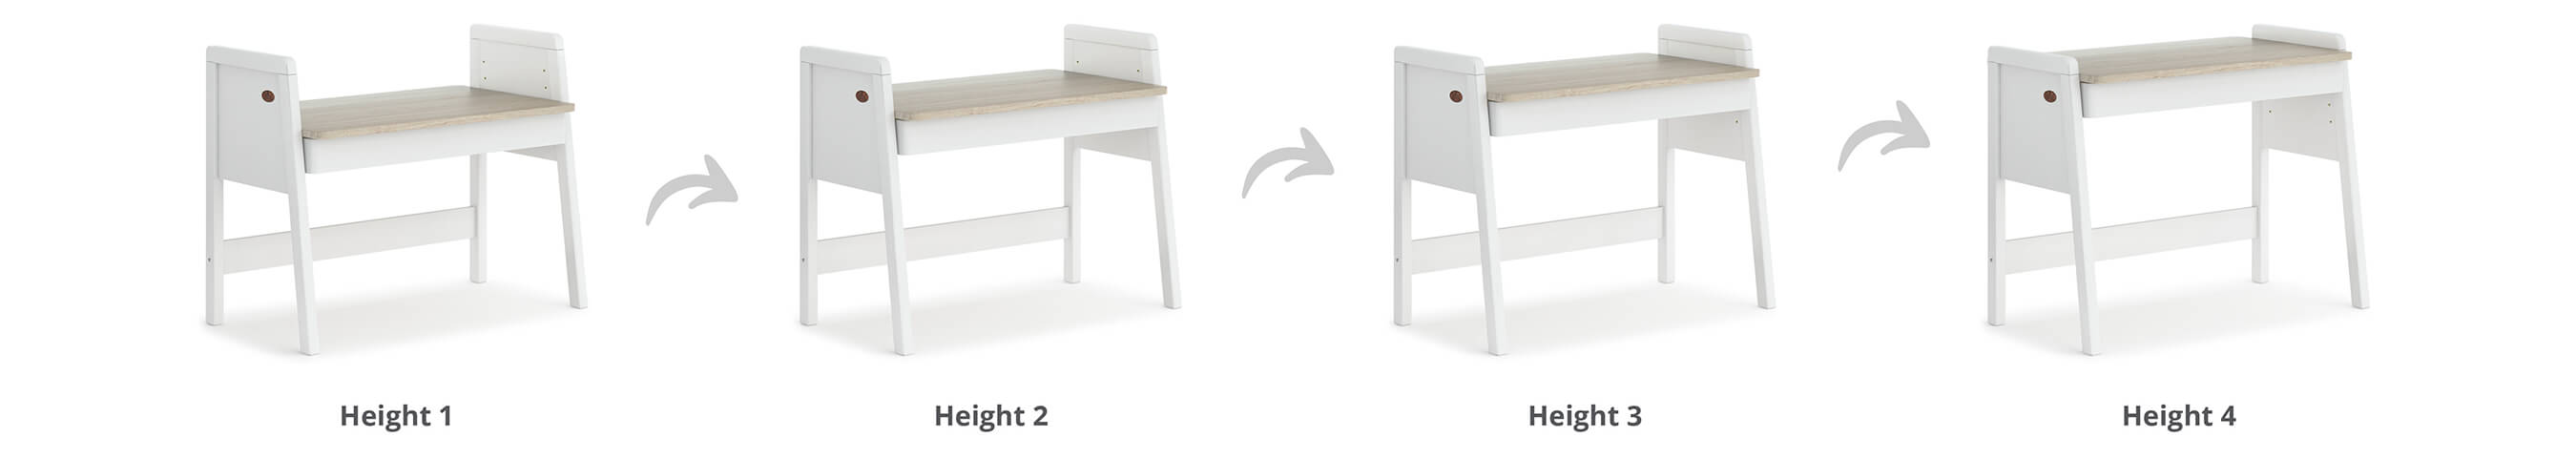 Feature_Highlight_CMS_Blocks_Height_Adjustable_Desks_and_Chairs_January_2021-019